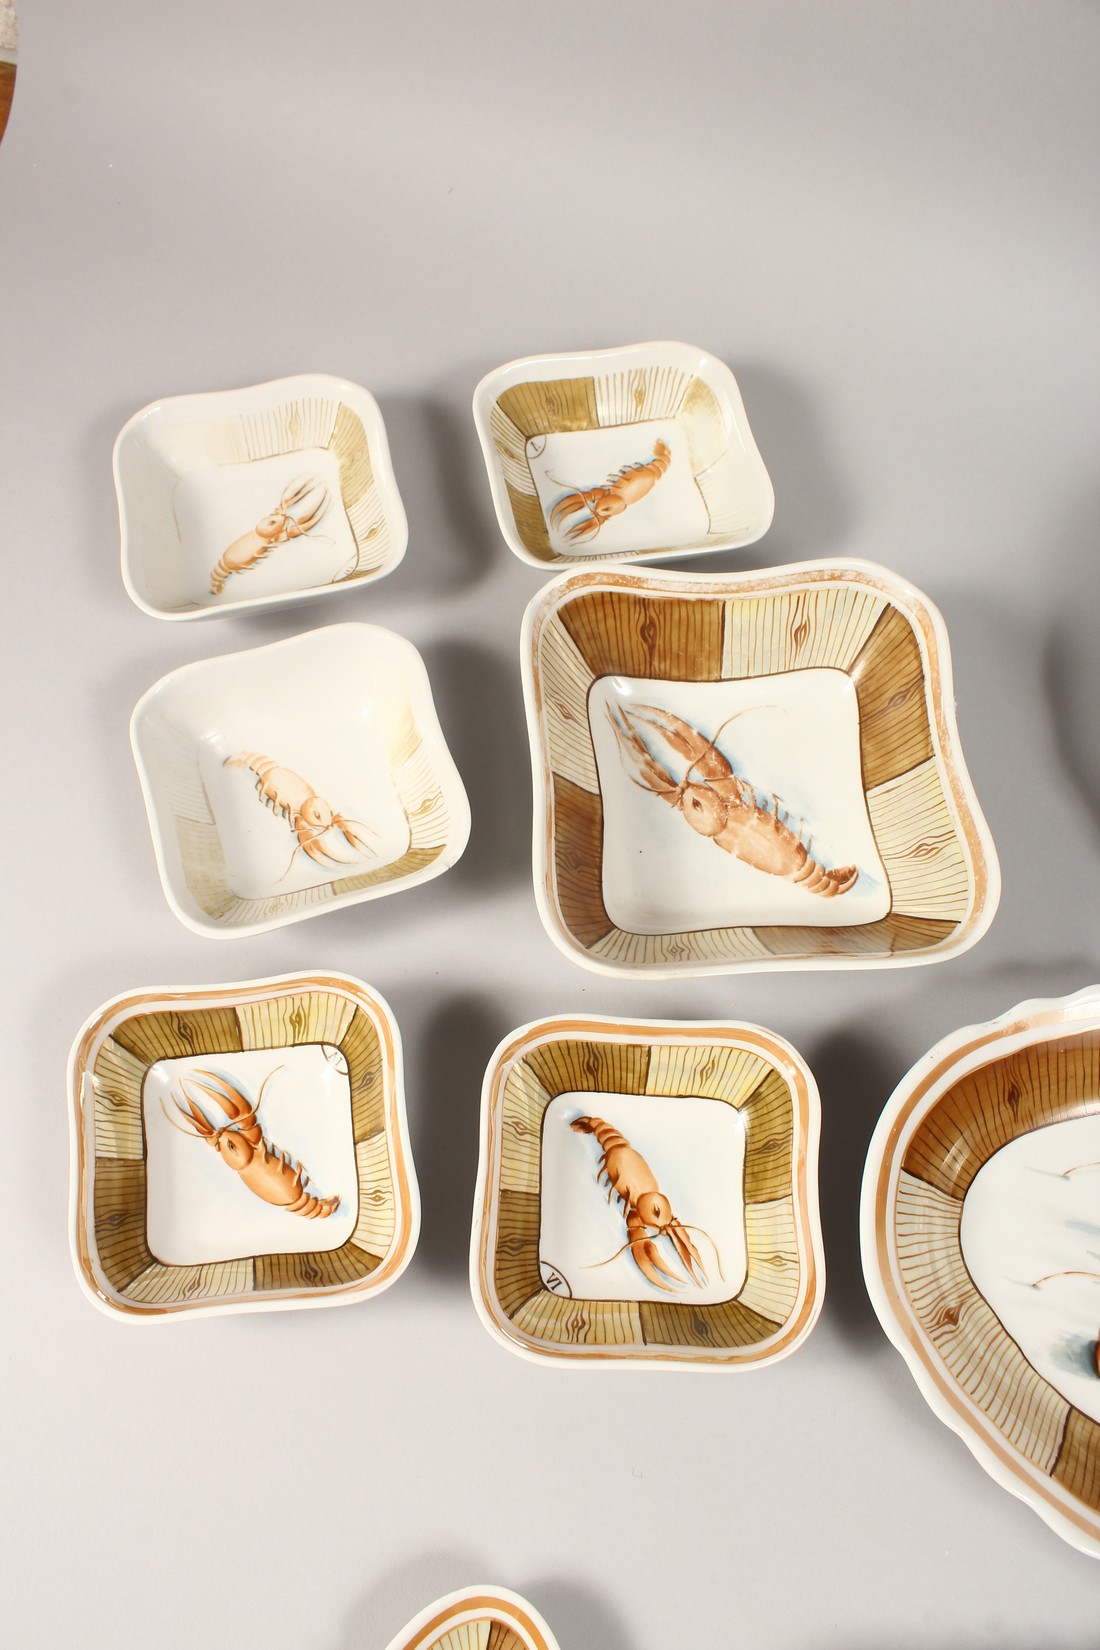 A RUSSIAN PORCELAIN SERVICE decorated with shell fish, comprising a pair of plates, 9.5ins diameter, - Image 3 of 6